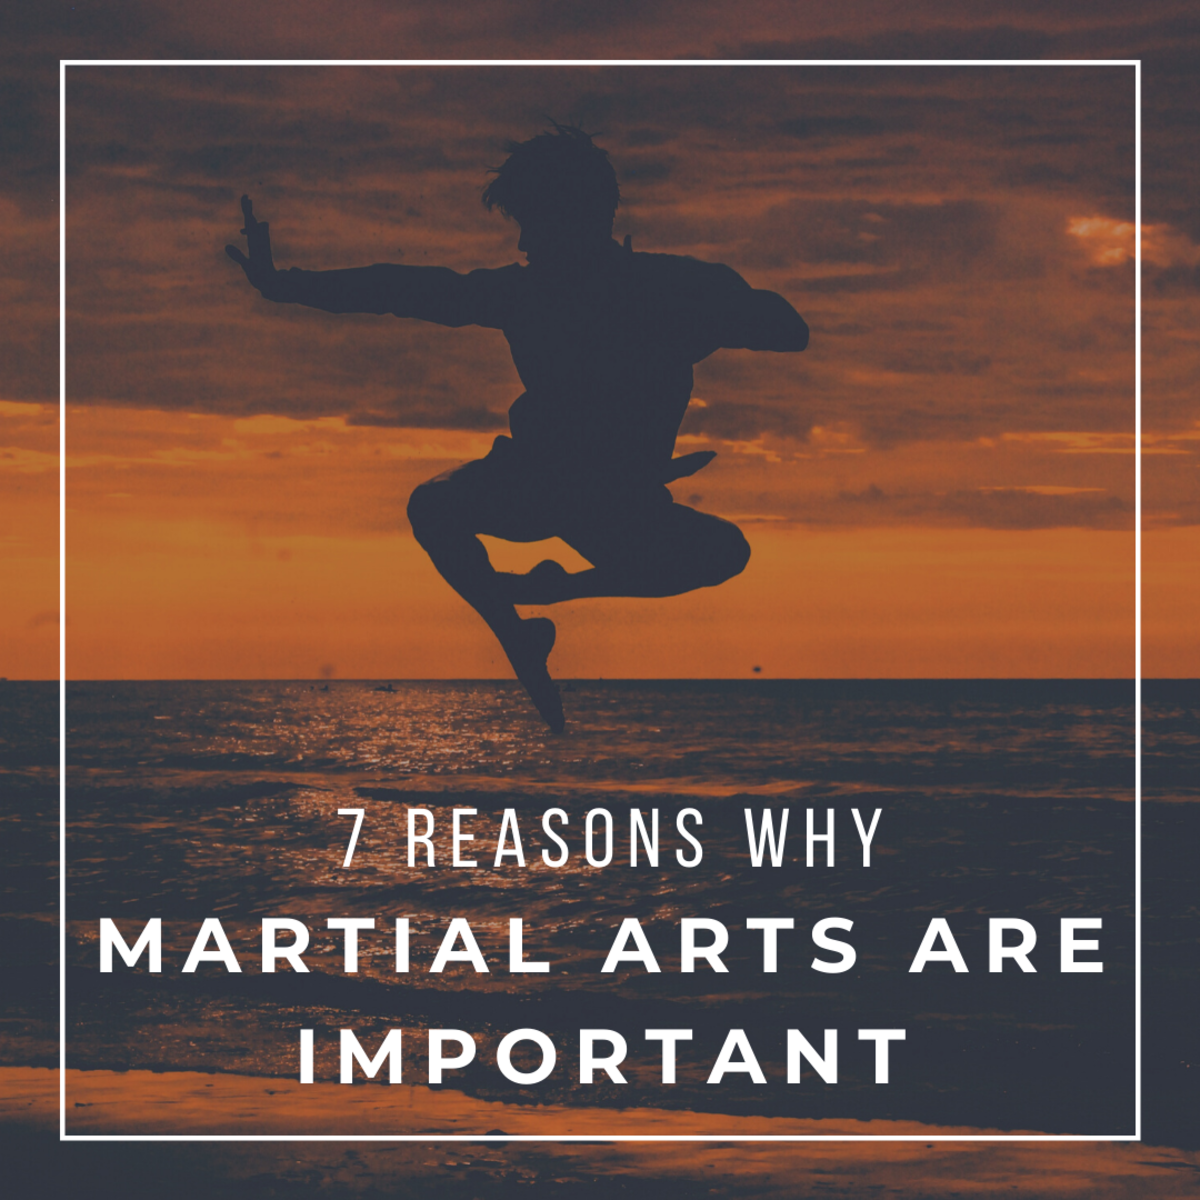 Why Are Martial Arts Important?